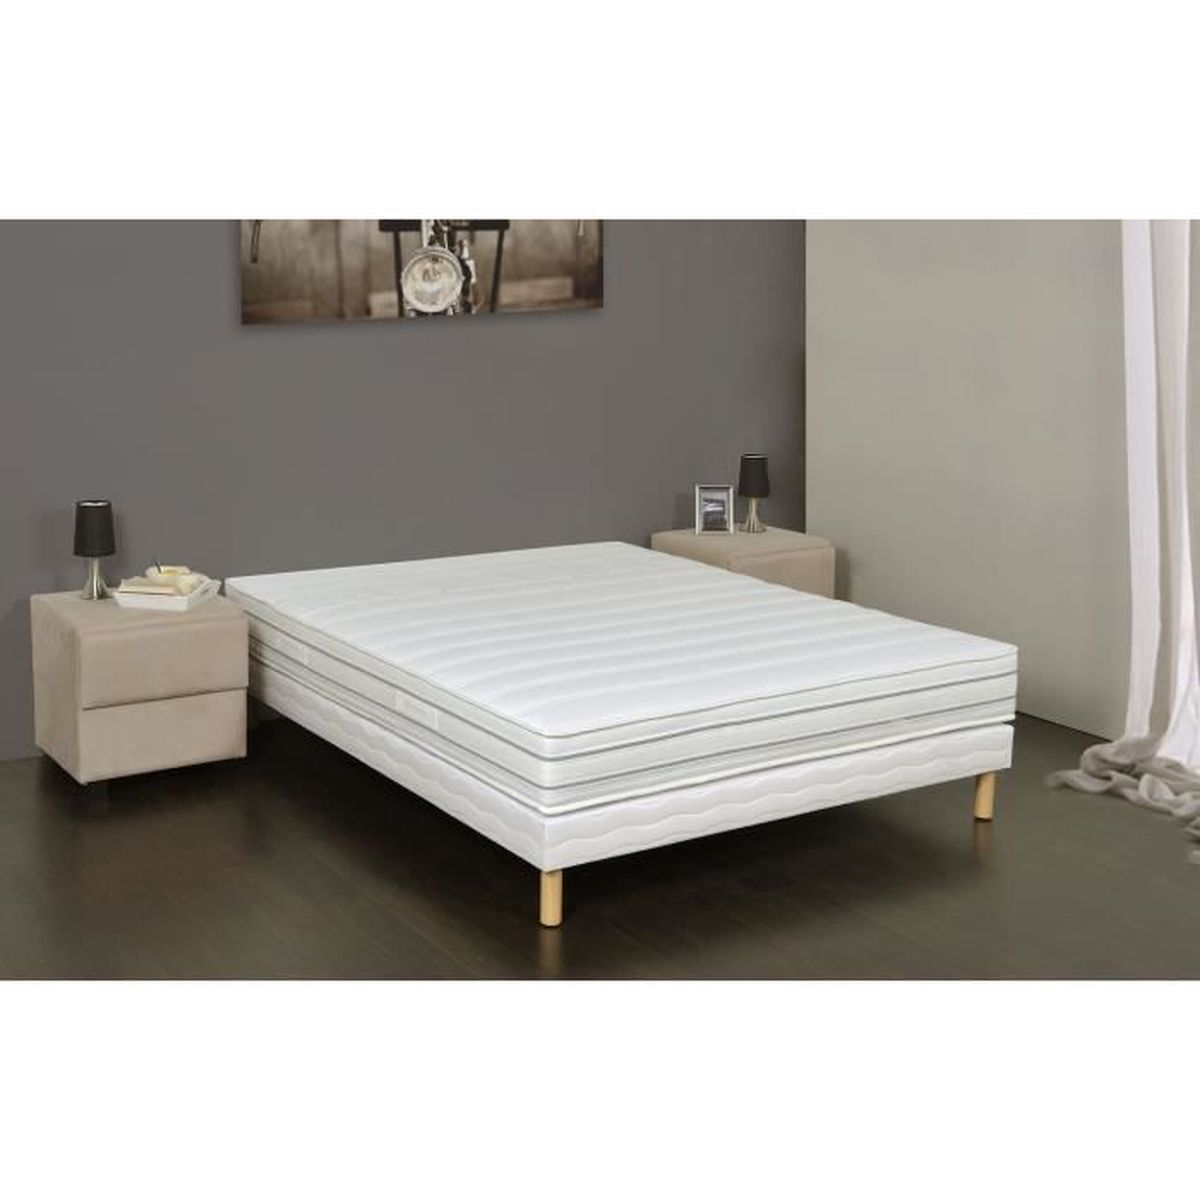 avis matelas nightitude simple matelas matelas dormalit viscosoja x with avis matelas. Black Bedroom Furniture Sets. Home Design Ideas